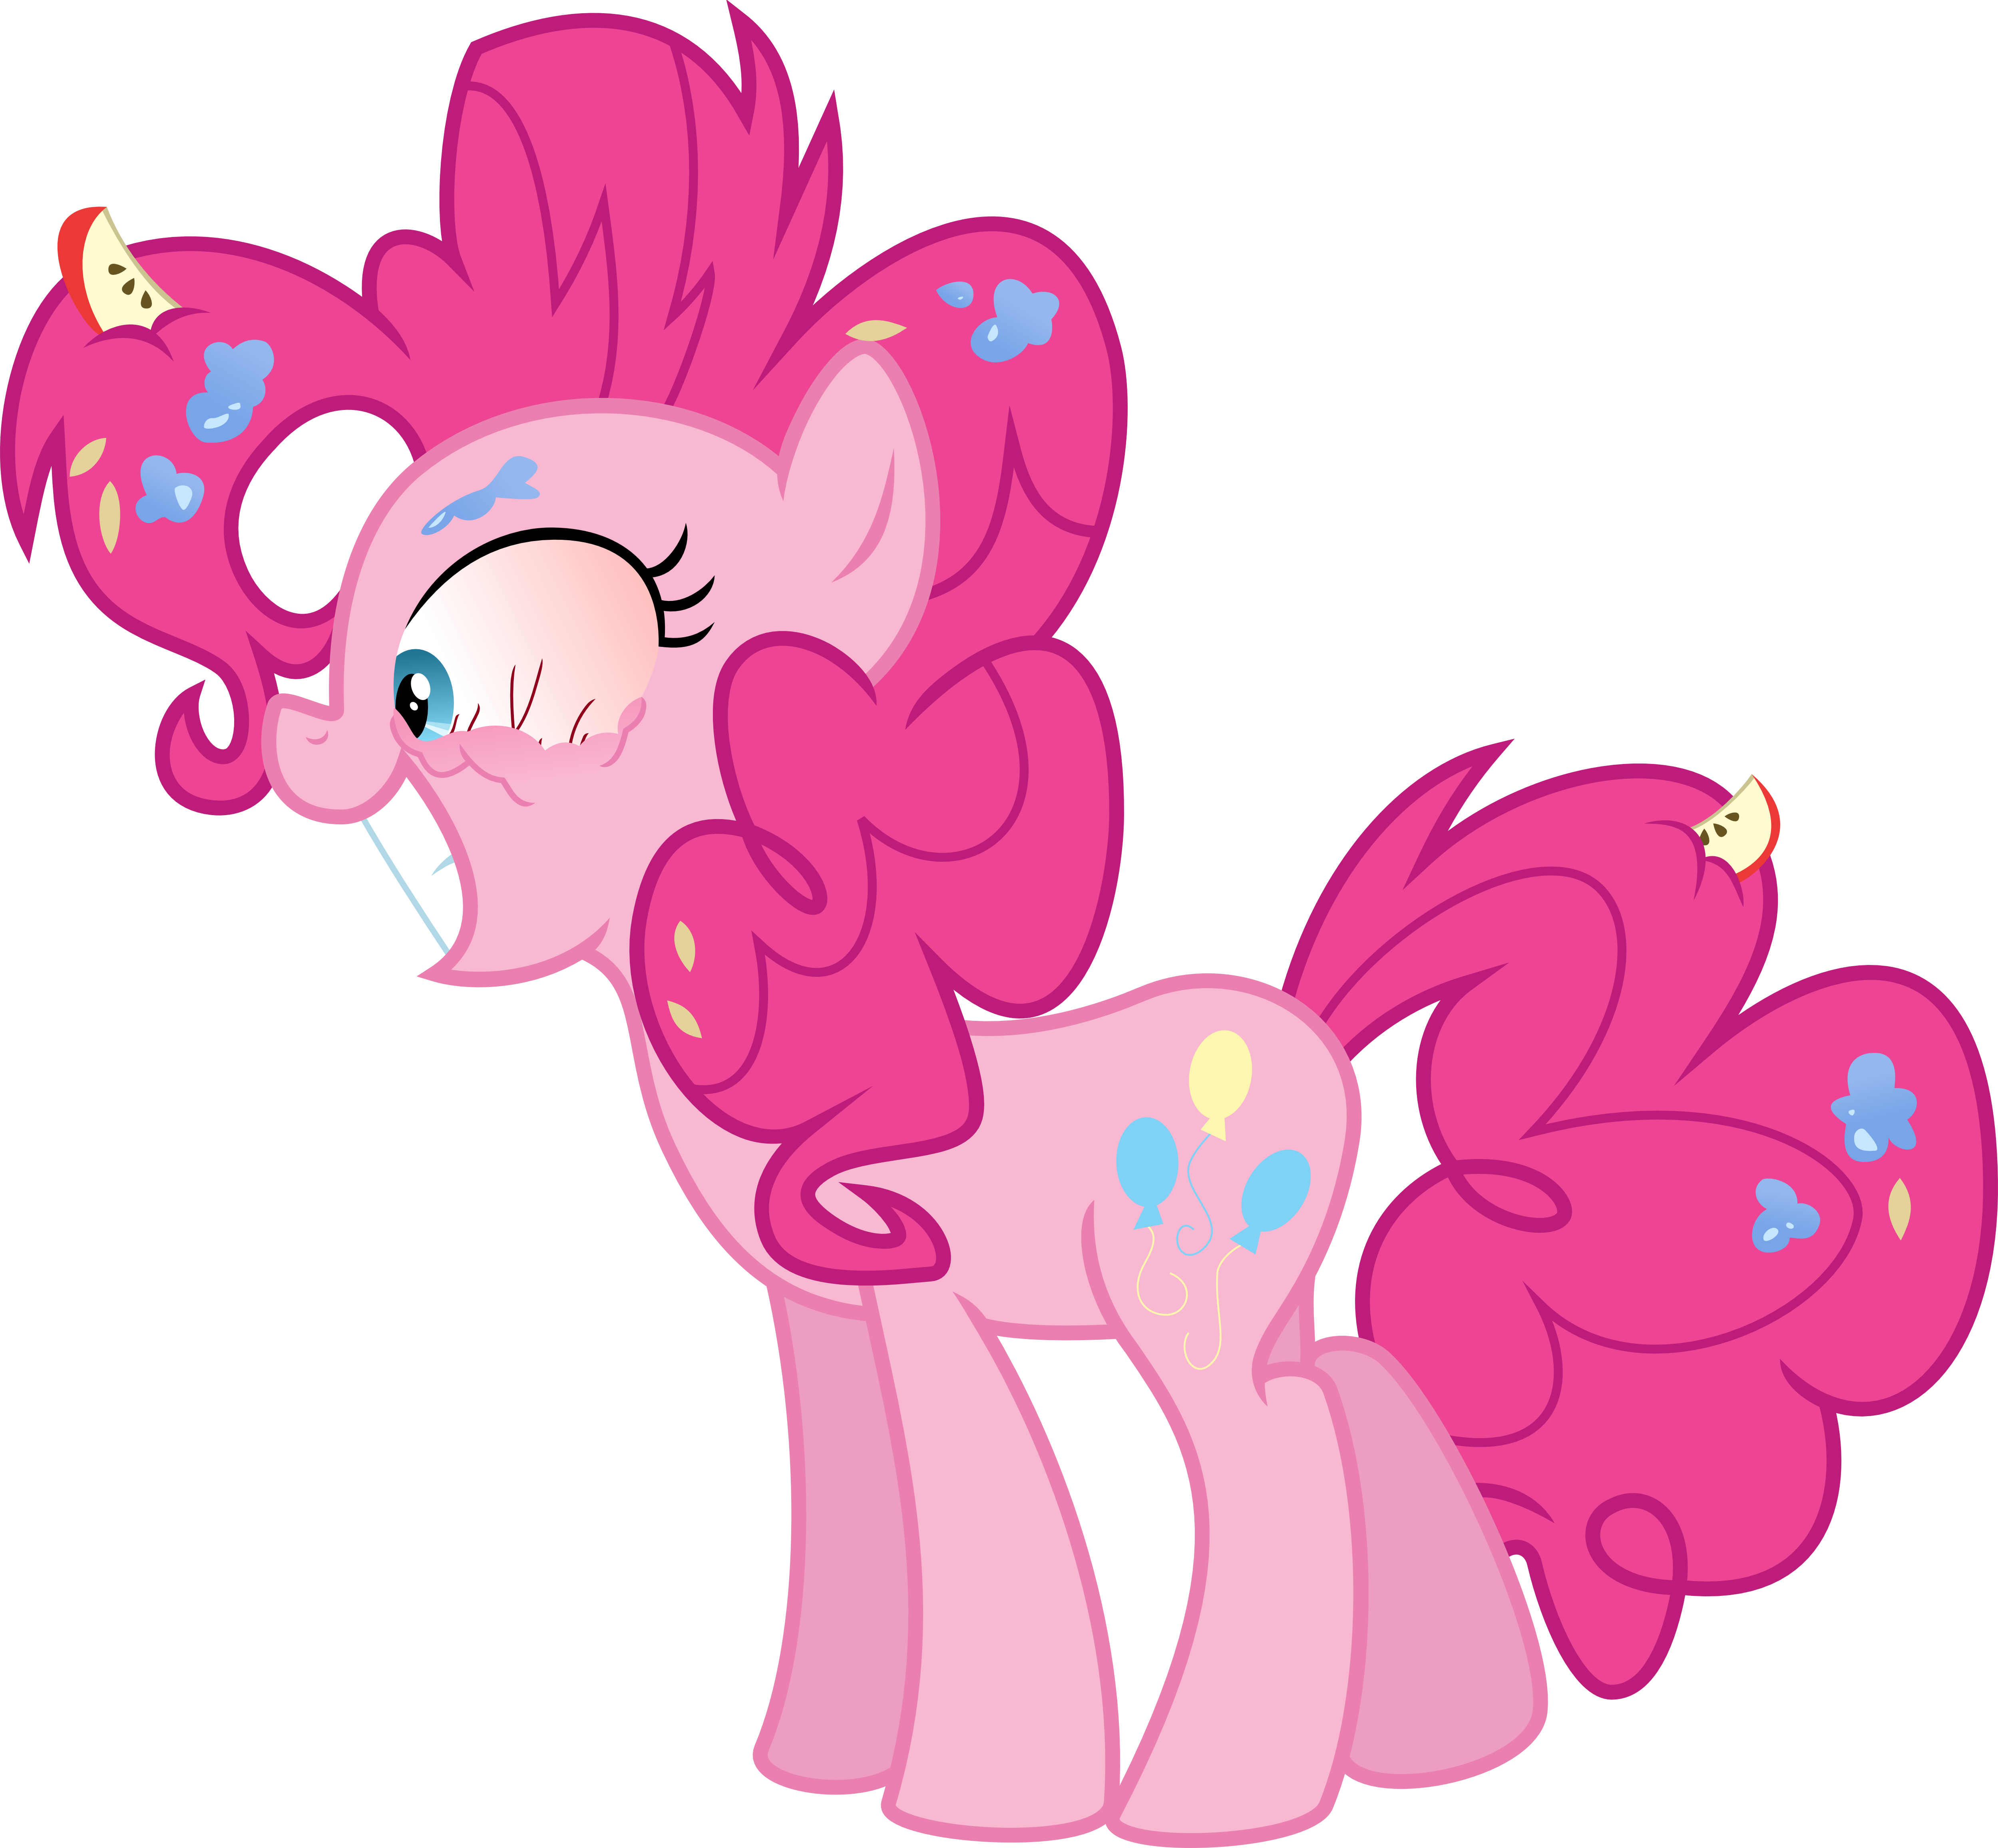 When you don't like Pinkie's Pies